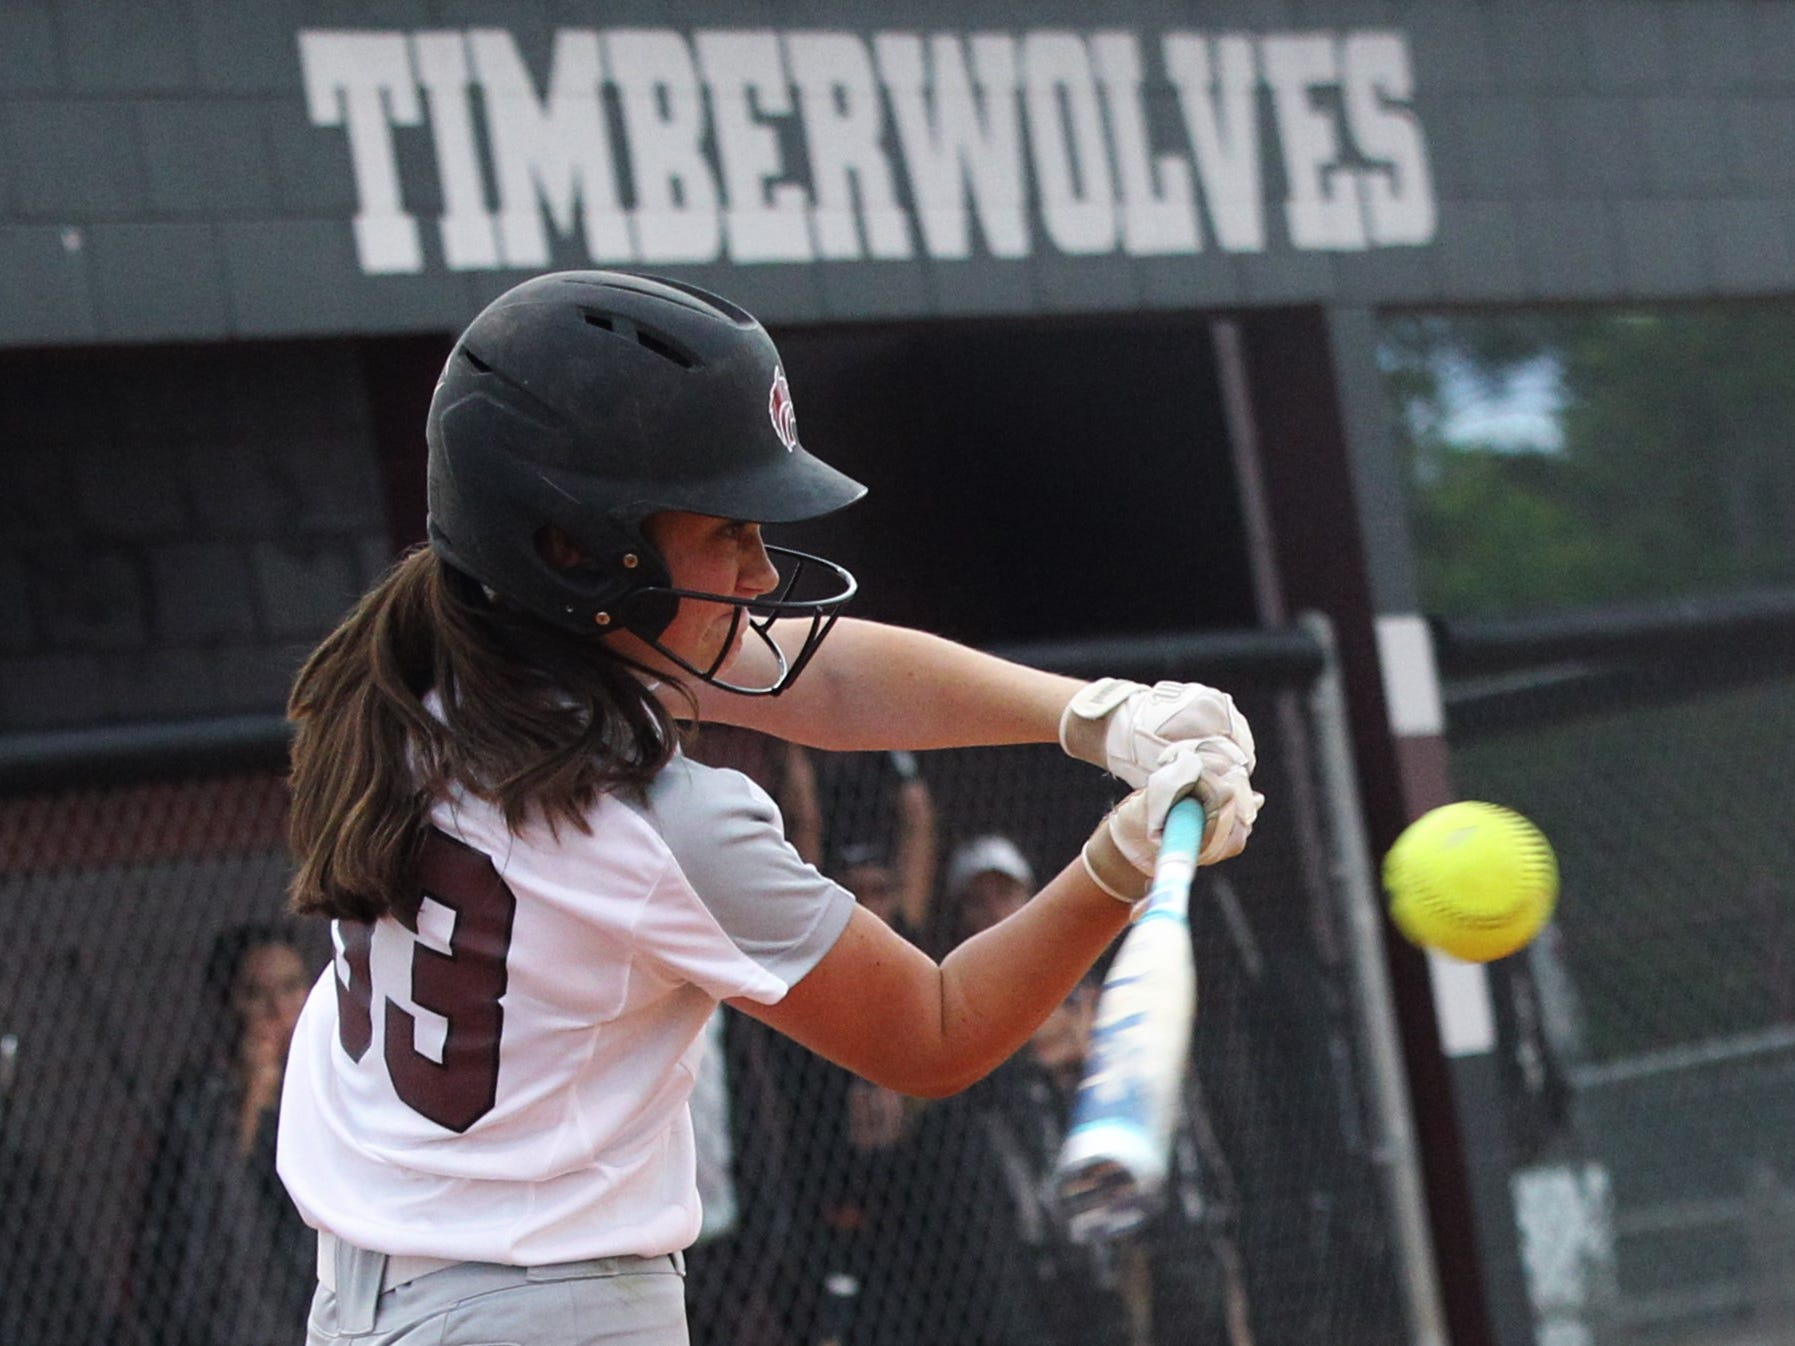 Chiles sophomore Meghan Lucas bats as the Timberwolves beat Atlantic Coast 6-4 during a Region 1-8A quarterfinal softball game on Wednesday, May 8, 2019.